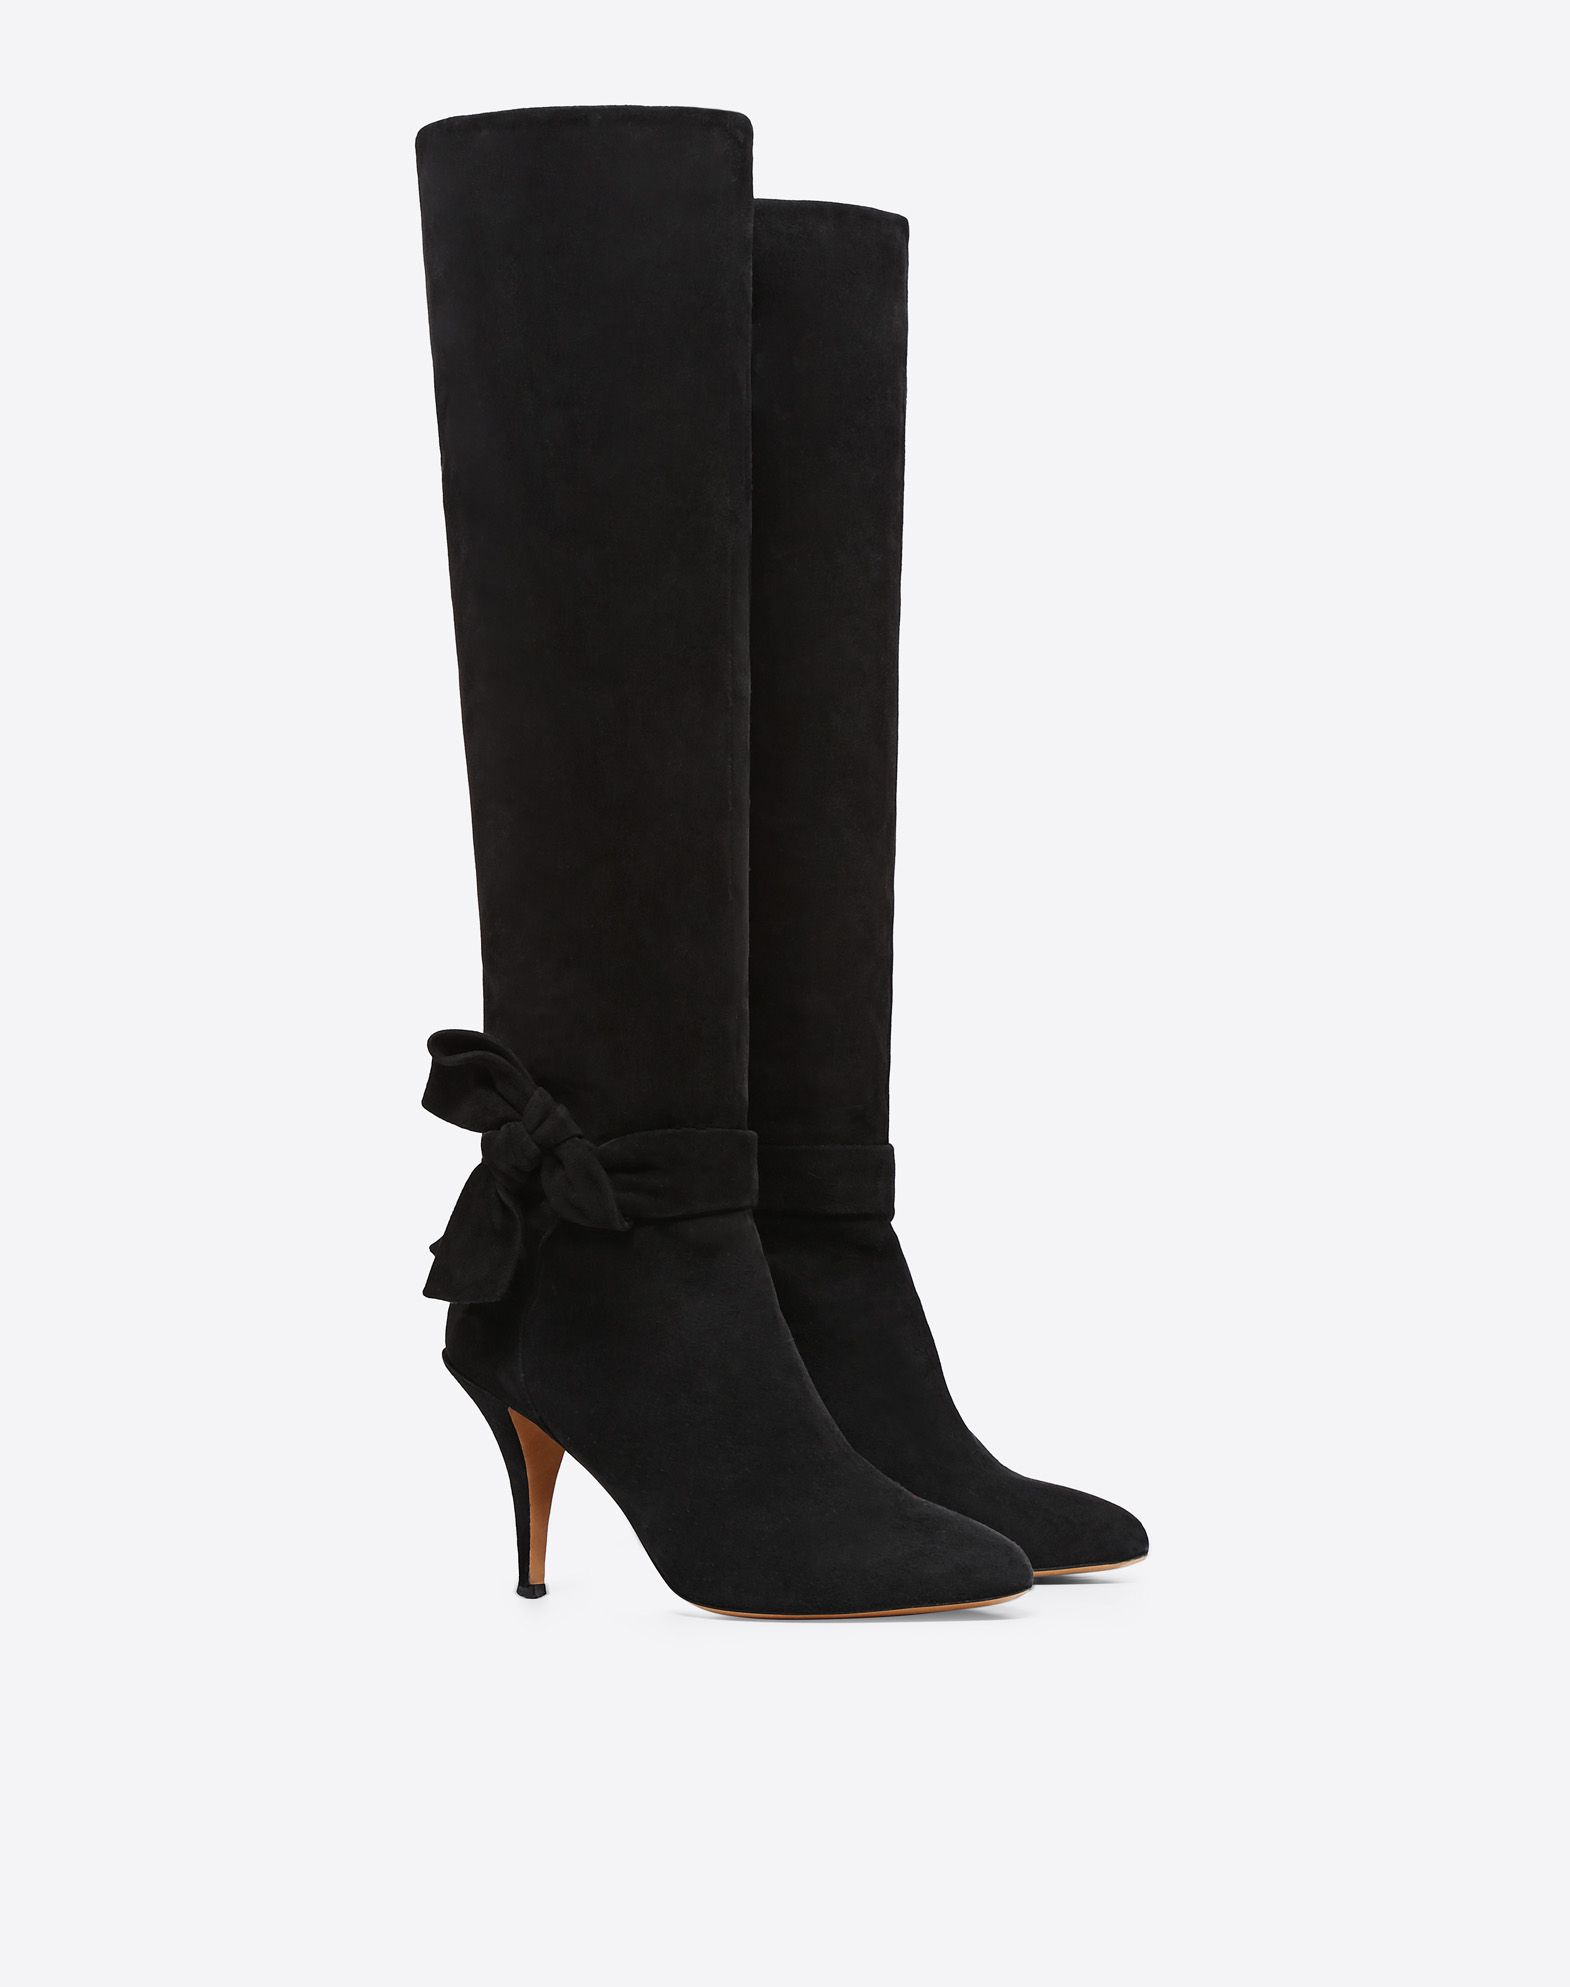 VALENTINO GARAVANI Knee-High Bow Boot in Suede Boot D r